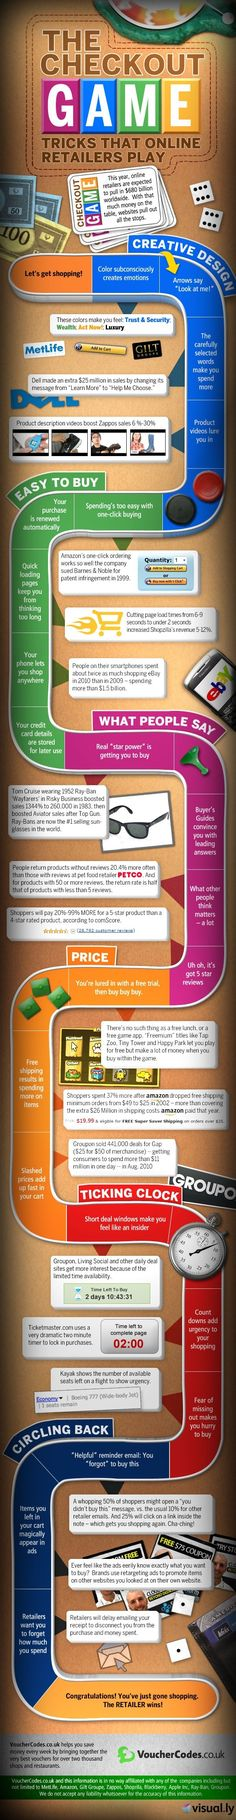 This is a great infographic about online retail strategies to get you to buy. Another reason why just having an online store isn't enough to compete; you need to know these things.